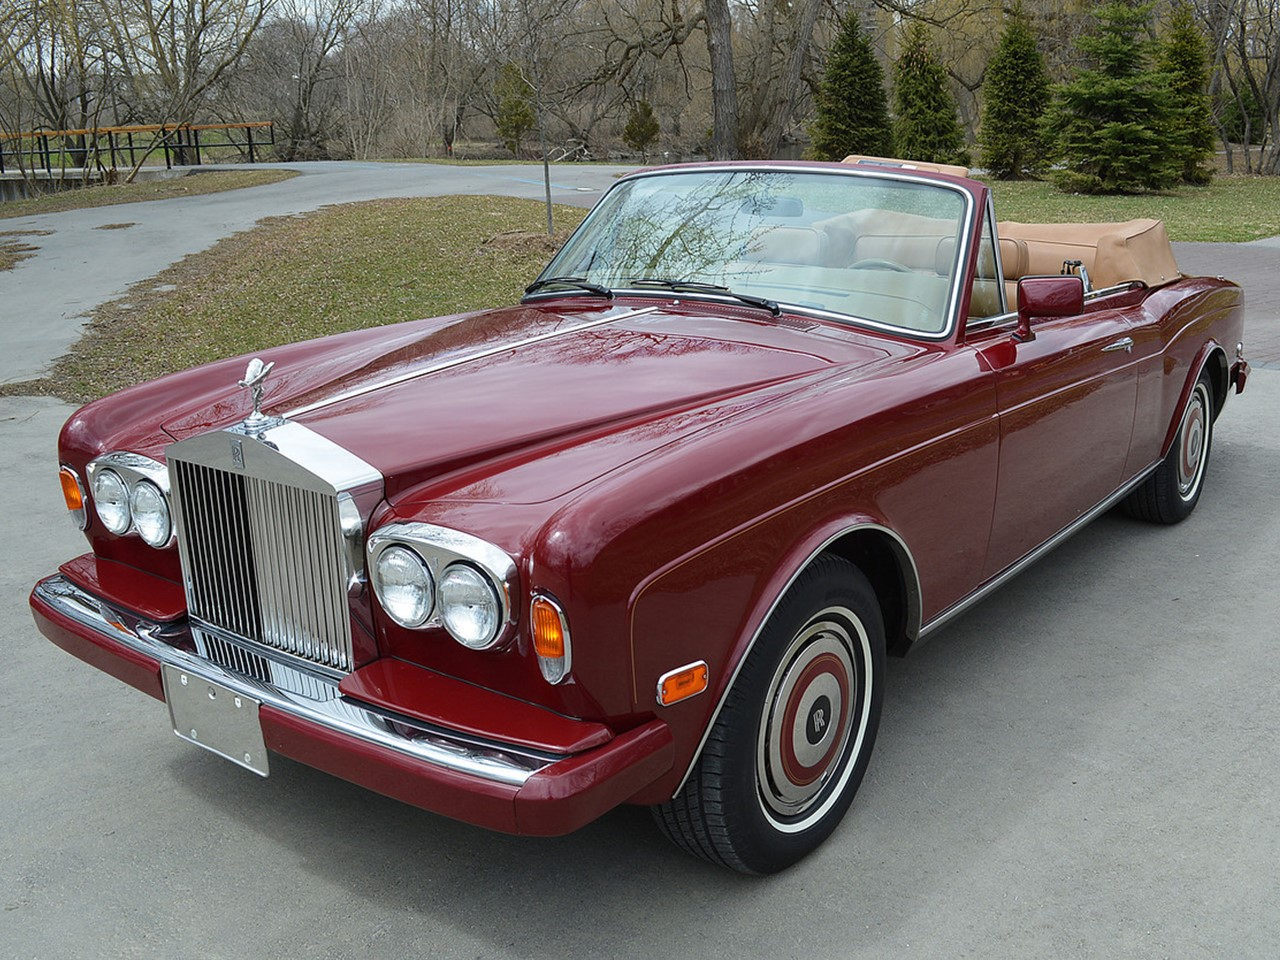 1986 Rolls Royce Corniche Convertible - NotoriousLuxury